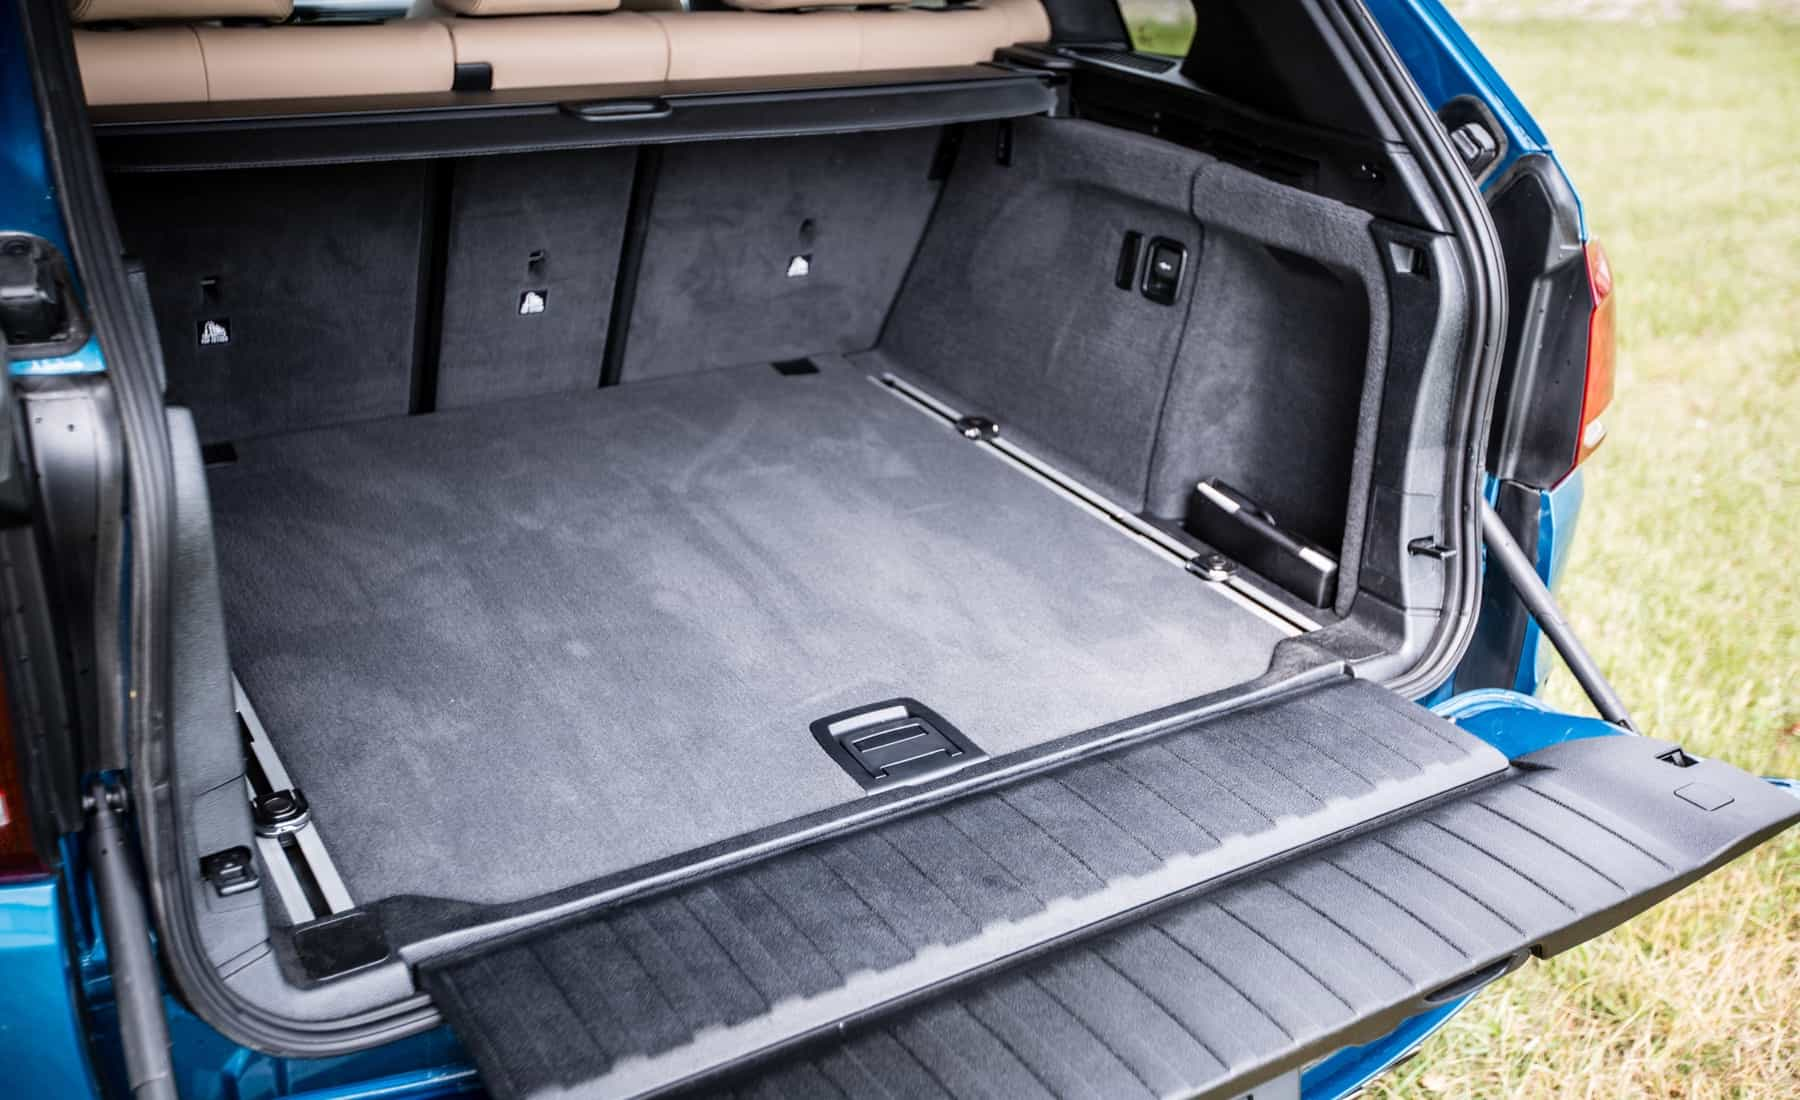 2017 BMW X5 M Interior View Cargo Capacity (Photo 14 of 35)